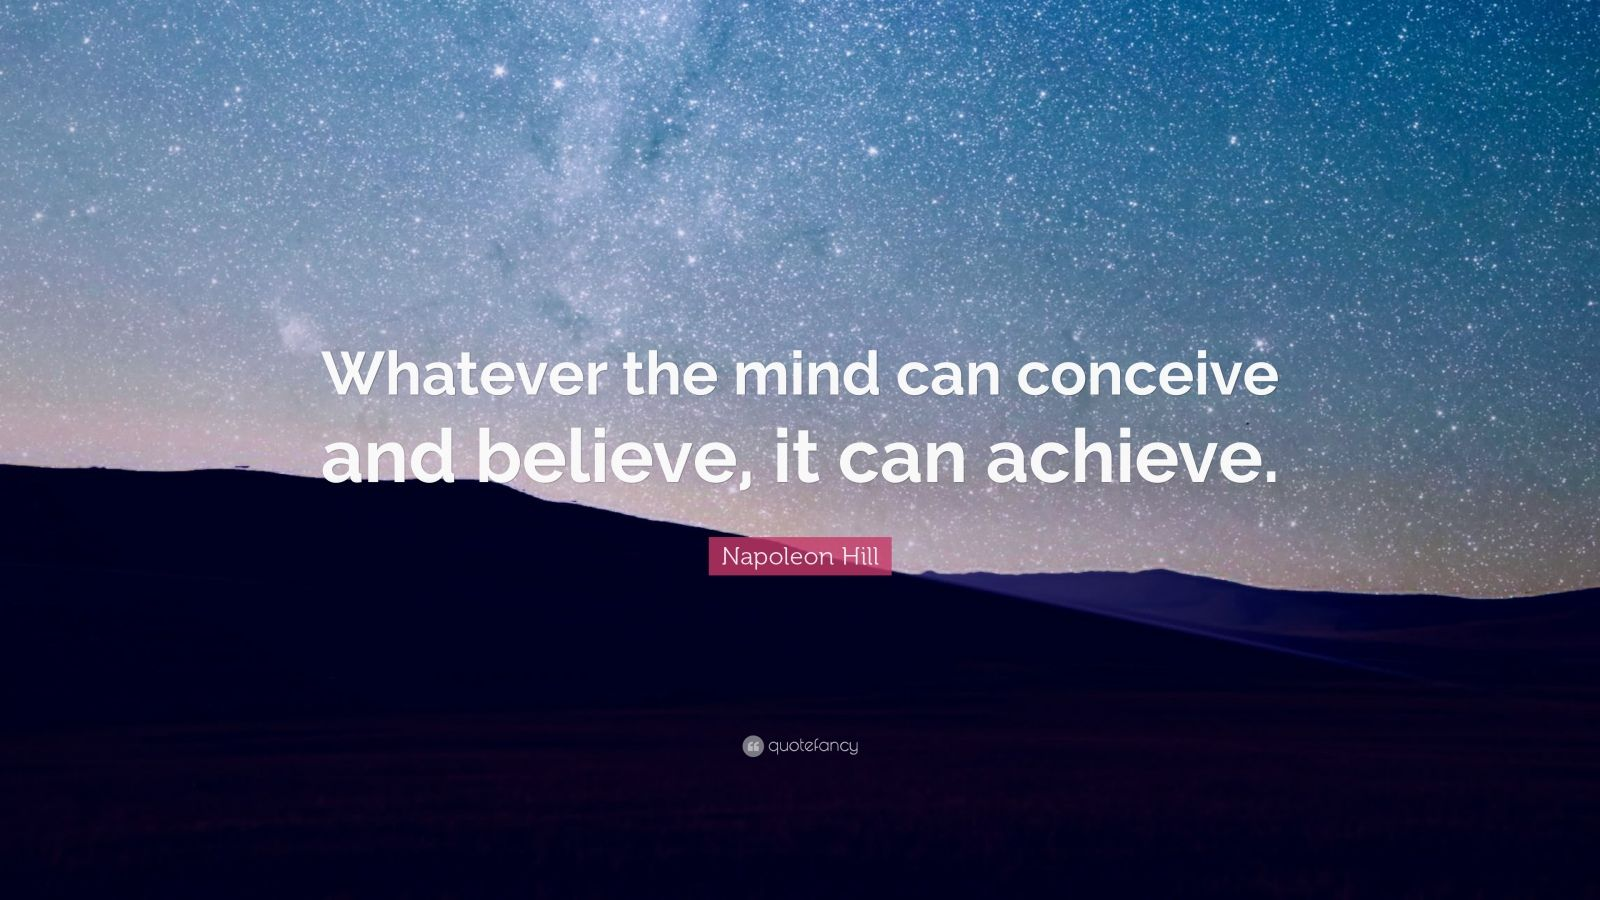 Persistence Quotes Wallpapers Napoleon Hill Quote Whatever The Mind Can Conceive And